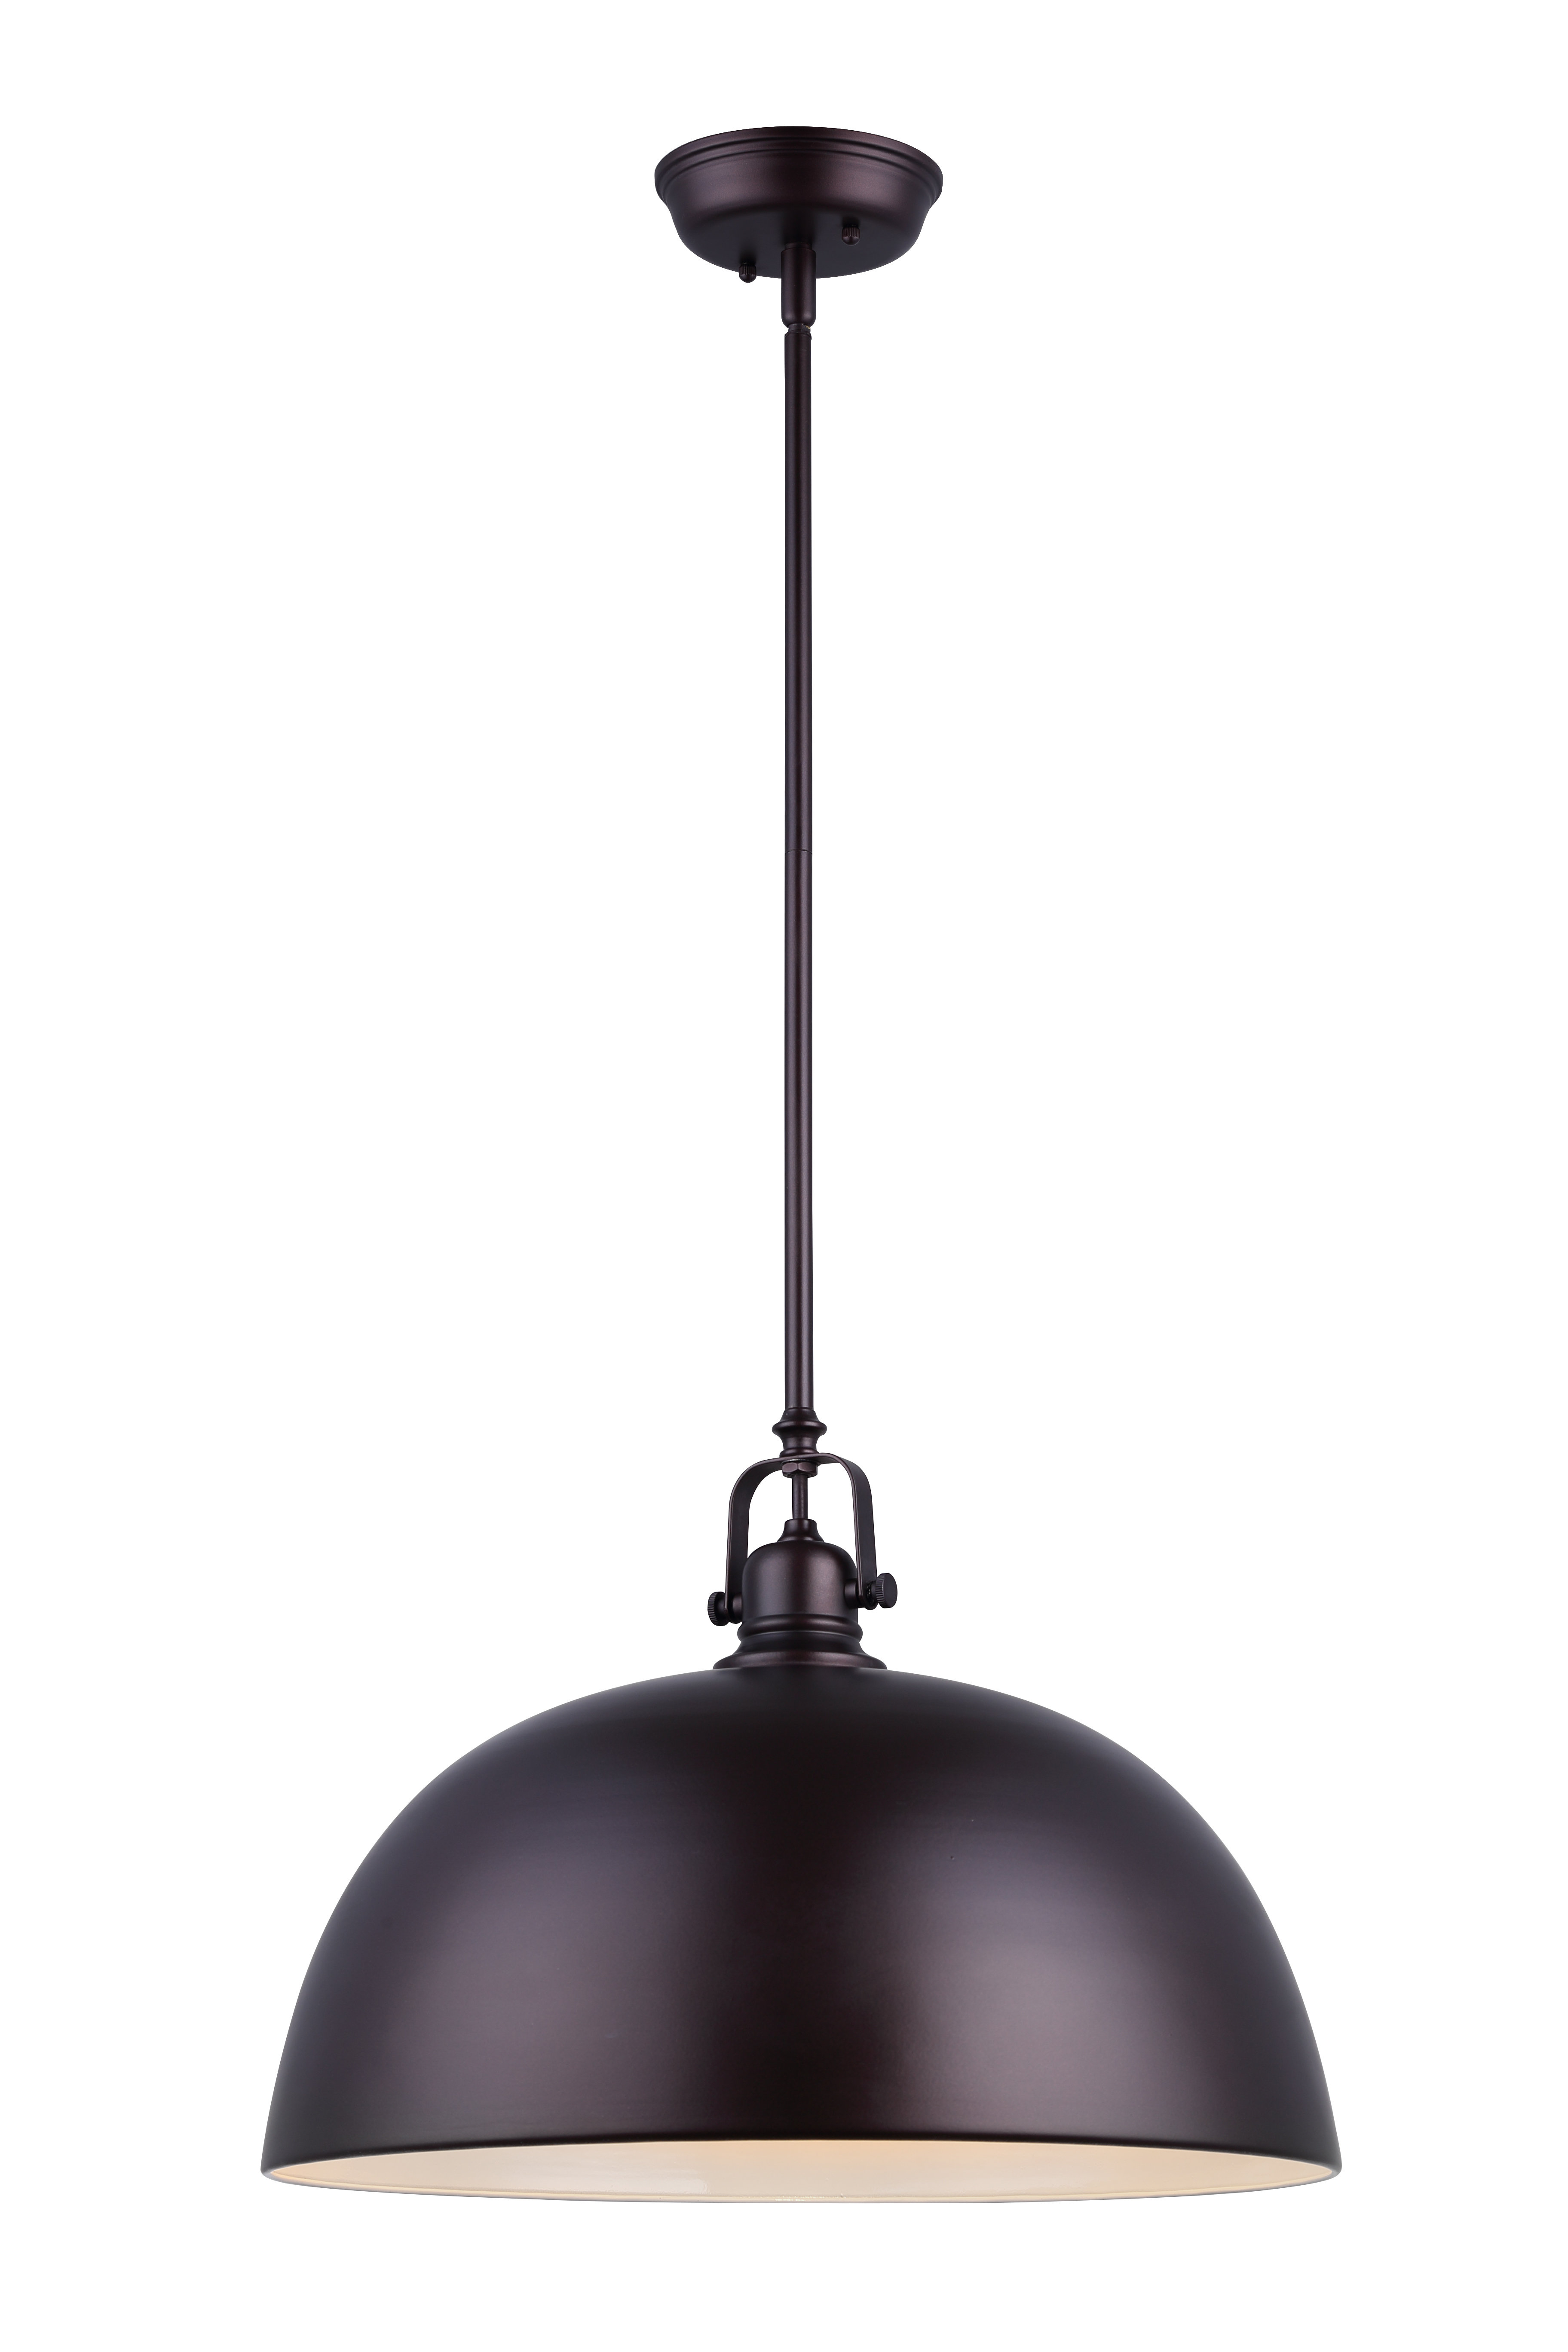 Beachcrest Home Southlake 1 Light Single Dome Pendant With Abernathy 1 Light Dome Pendants (Image 5 of 30)